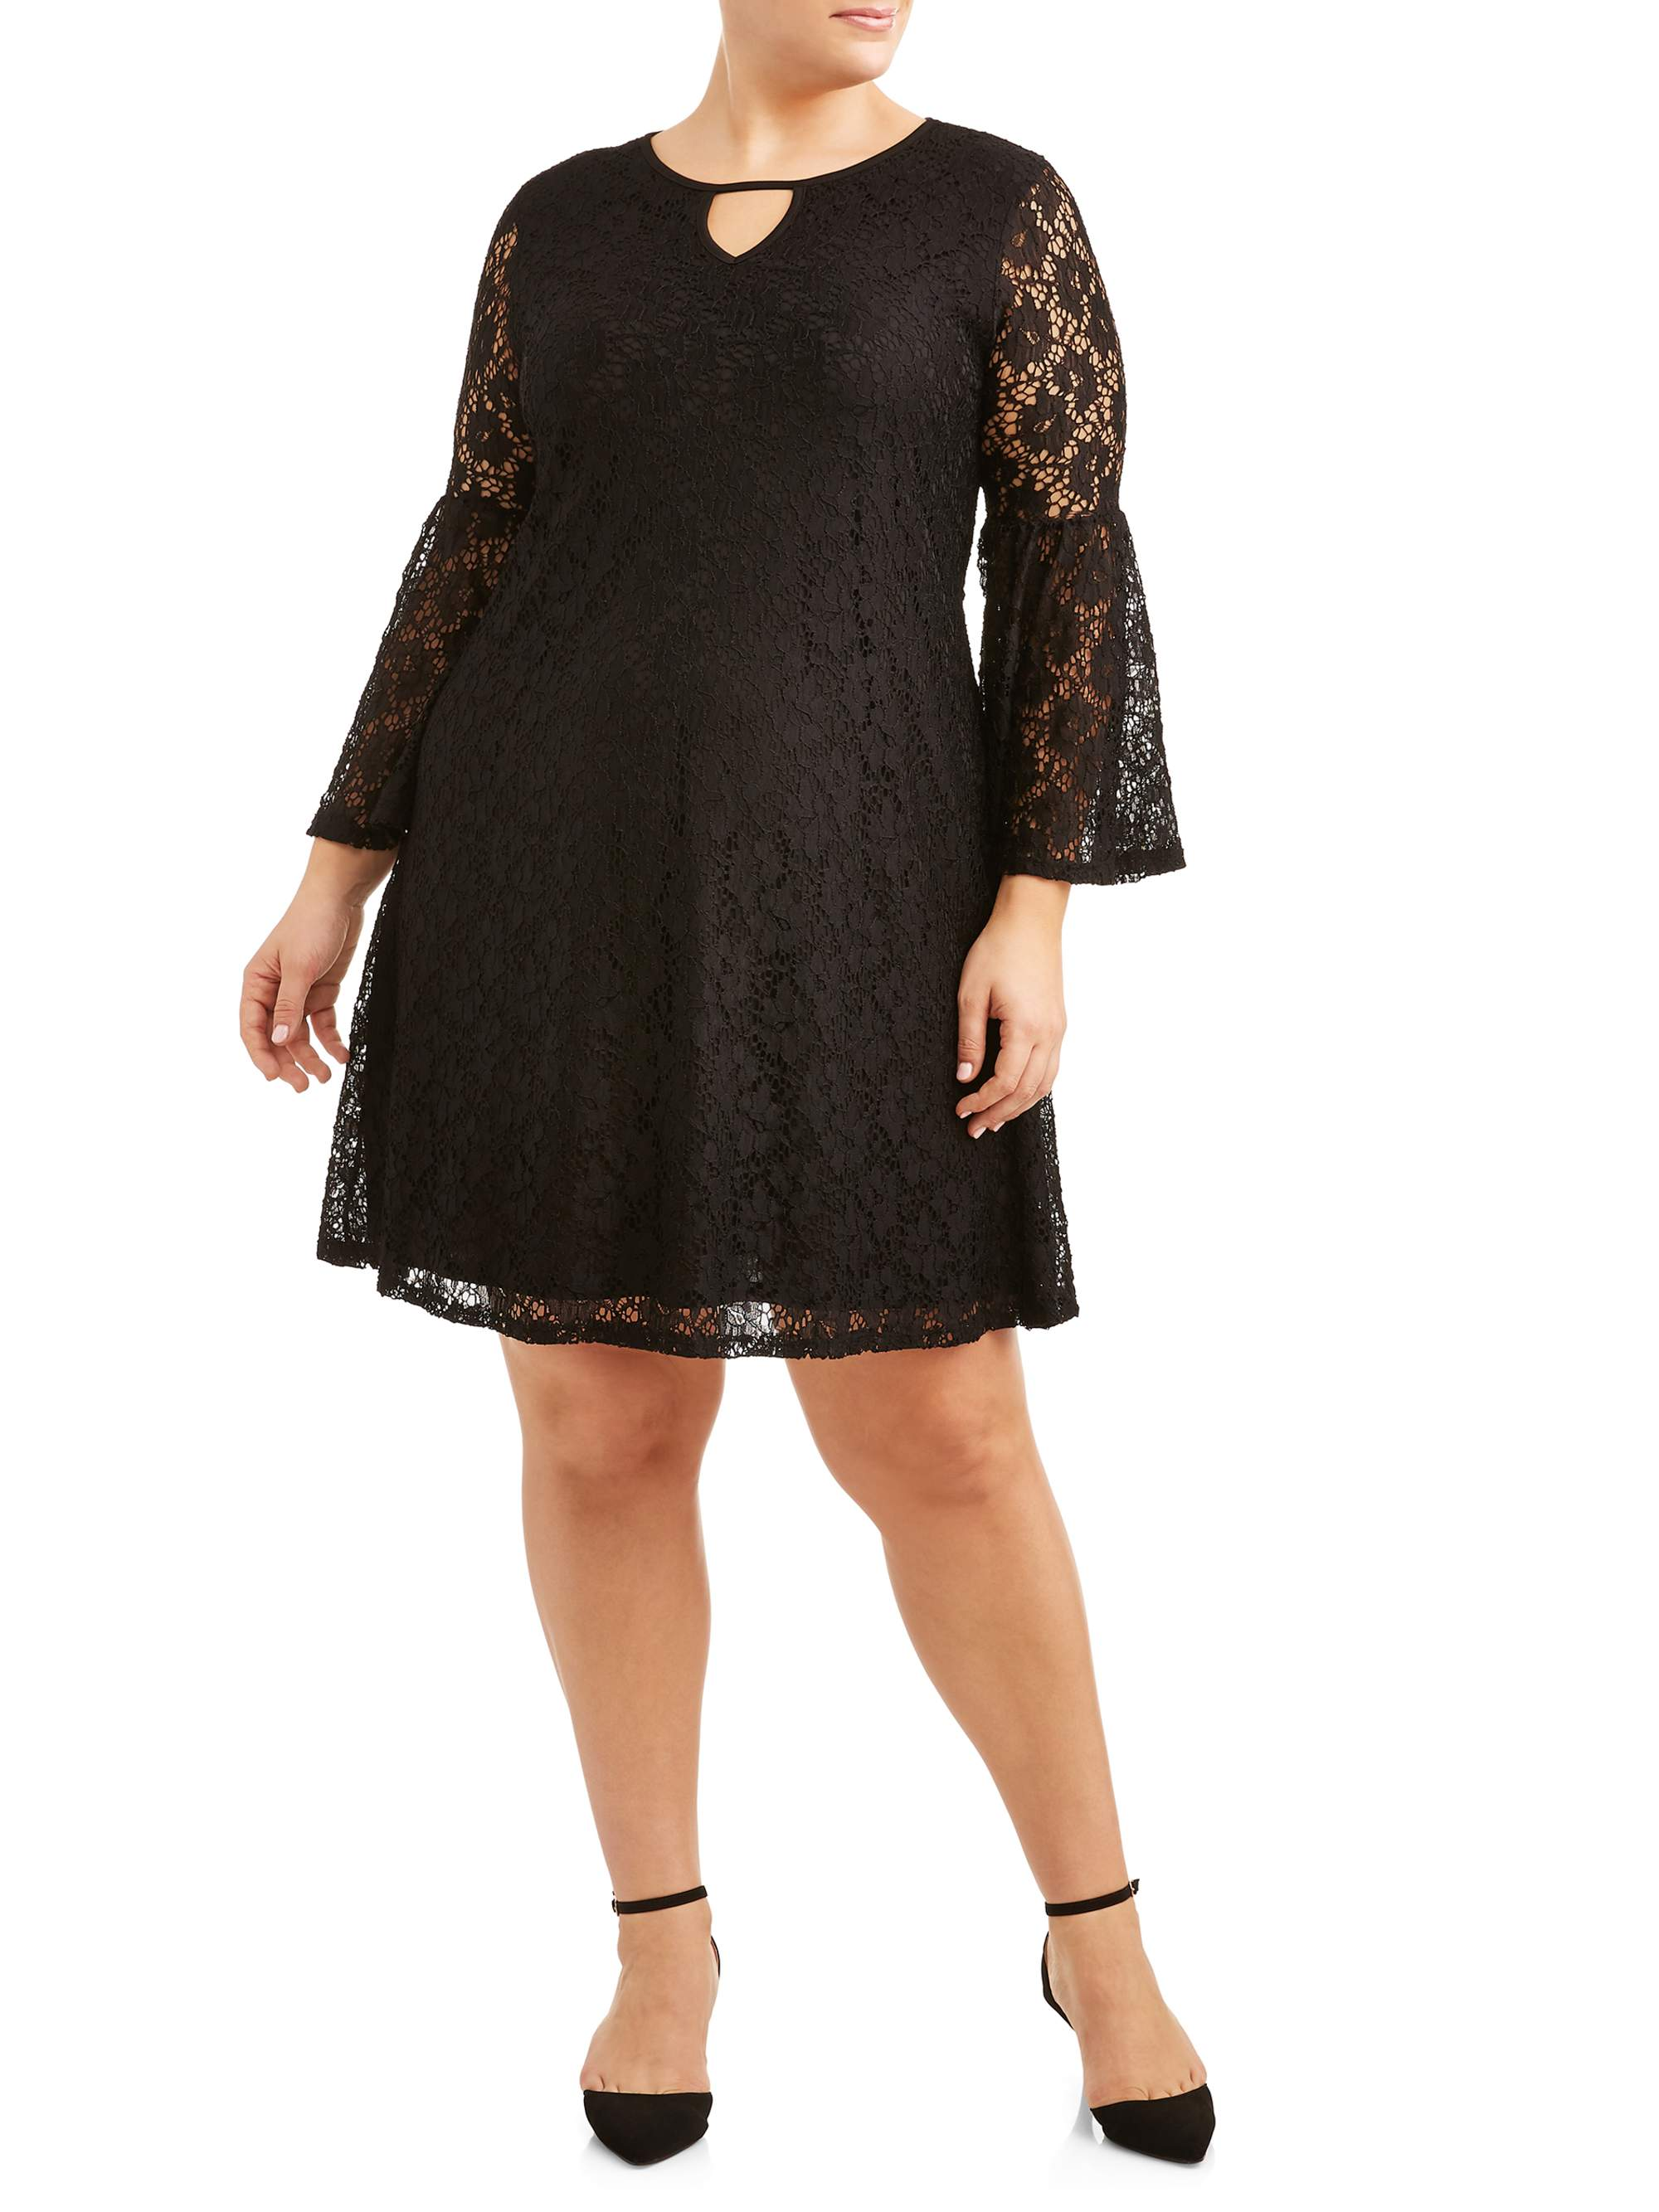 Women's Plus Size Bell Sleeve All Over Lace Dress